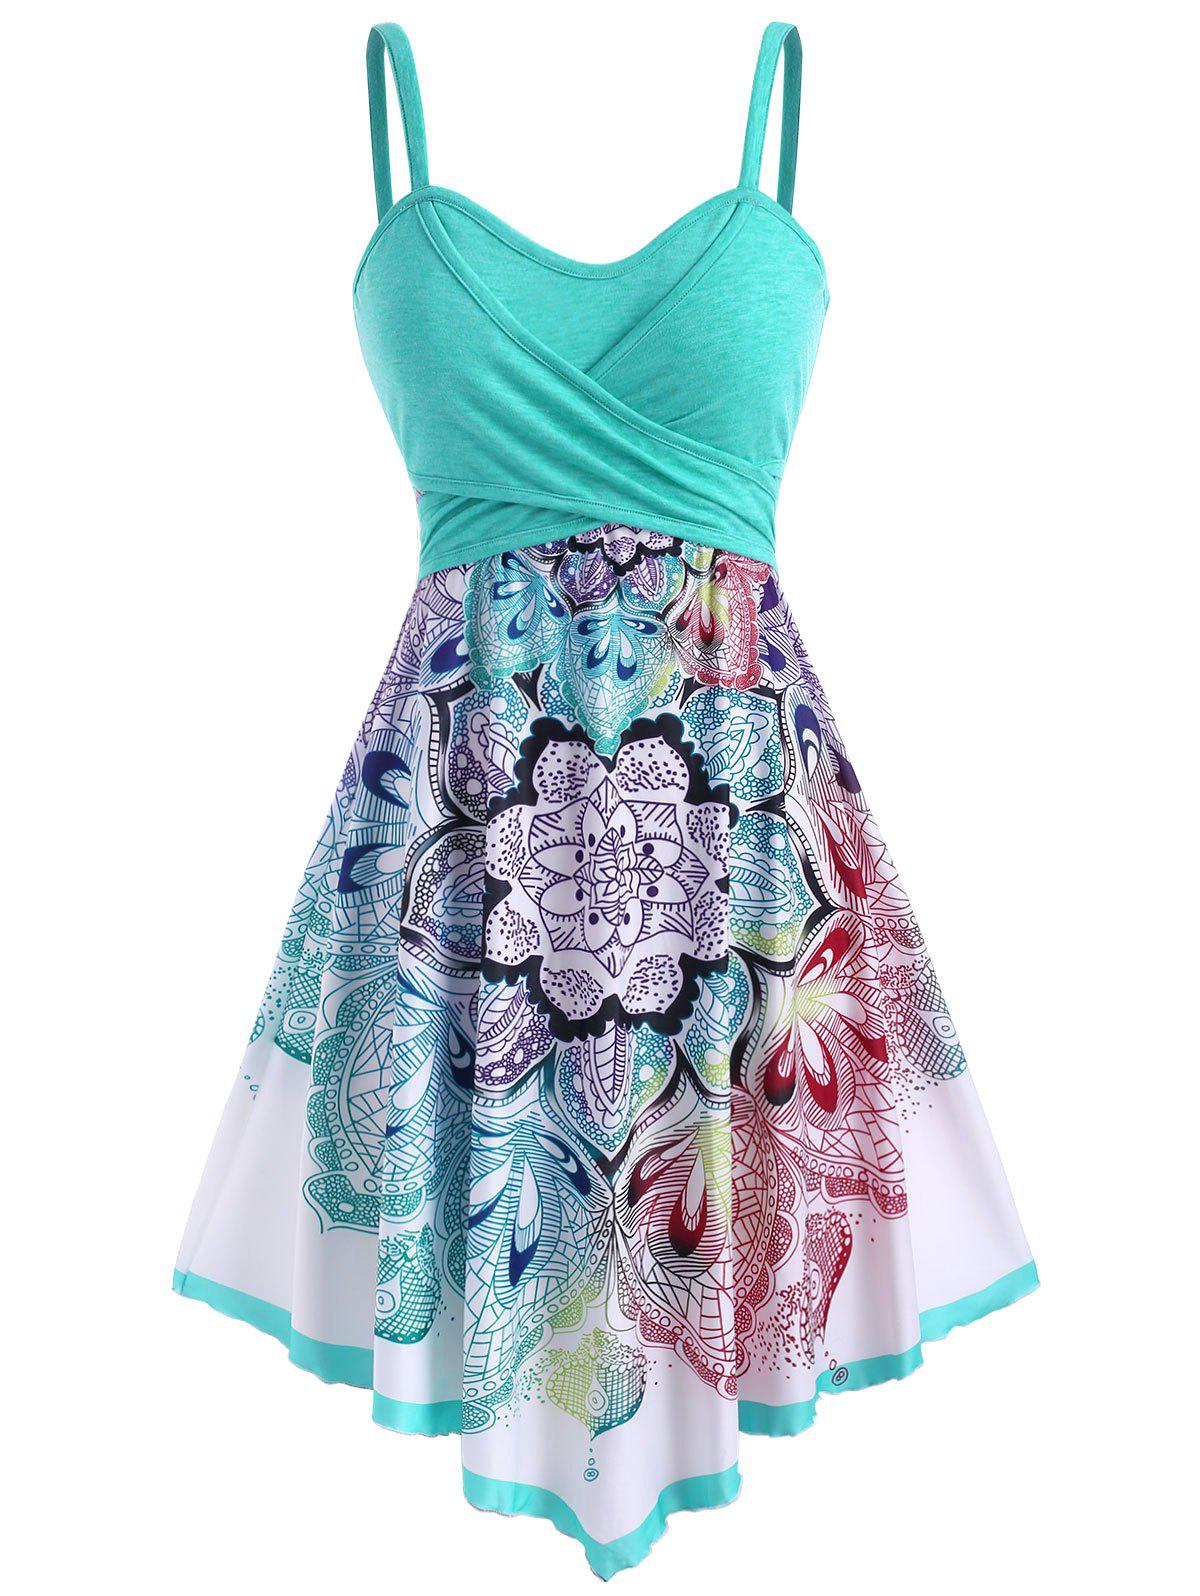 Bohemian Flower Crossover Empire Waist Dress - multicolor L